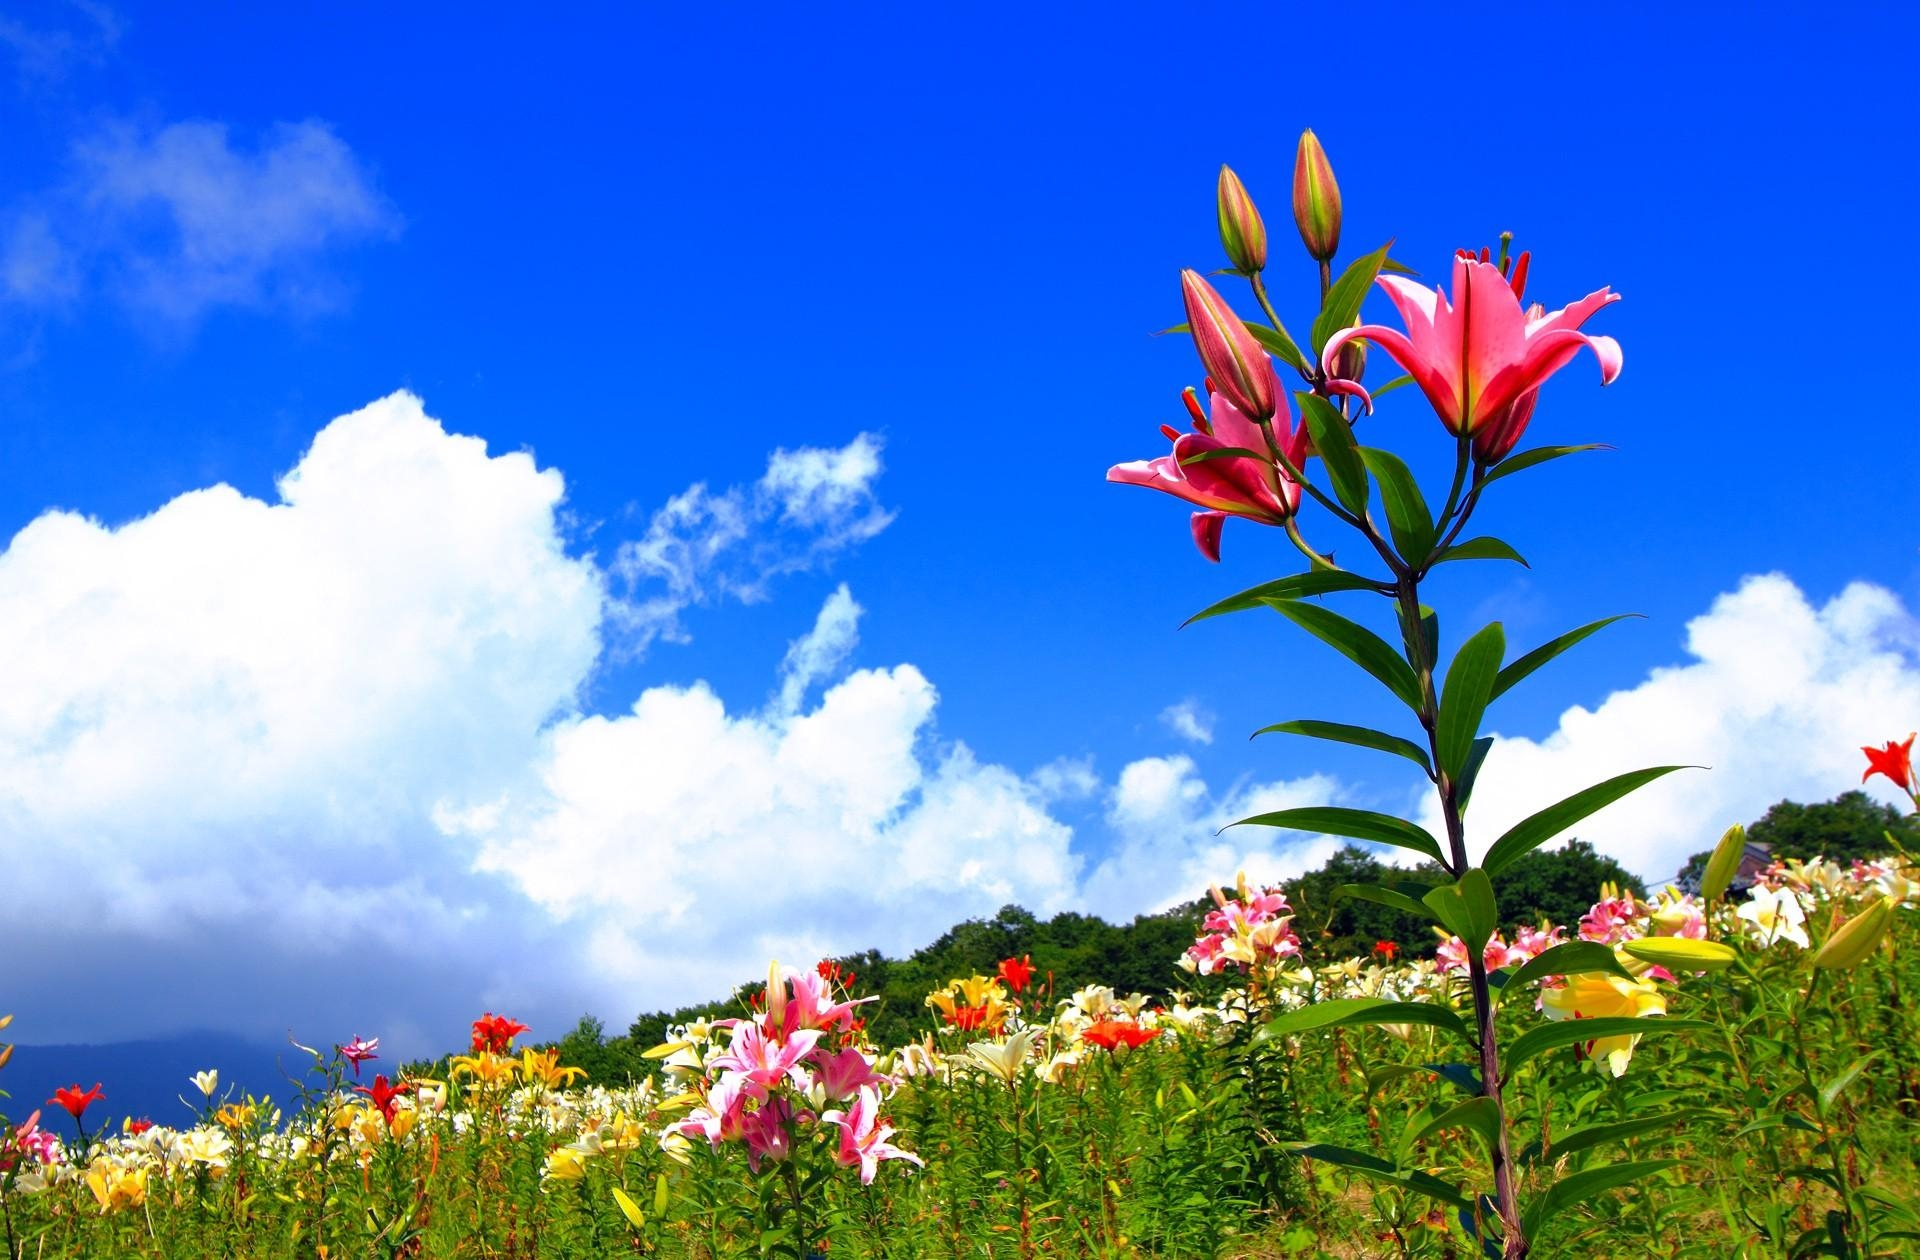 111905 download wallpaper Flowers, Sky, Lilies, Positive, Polyana, Glade, Sunny screensavers and pictures for free